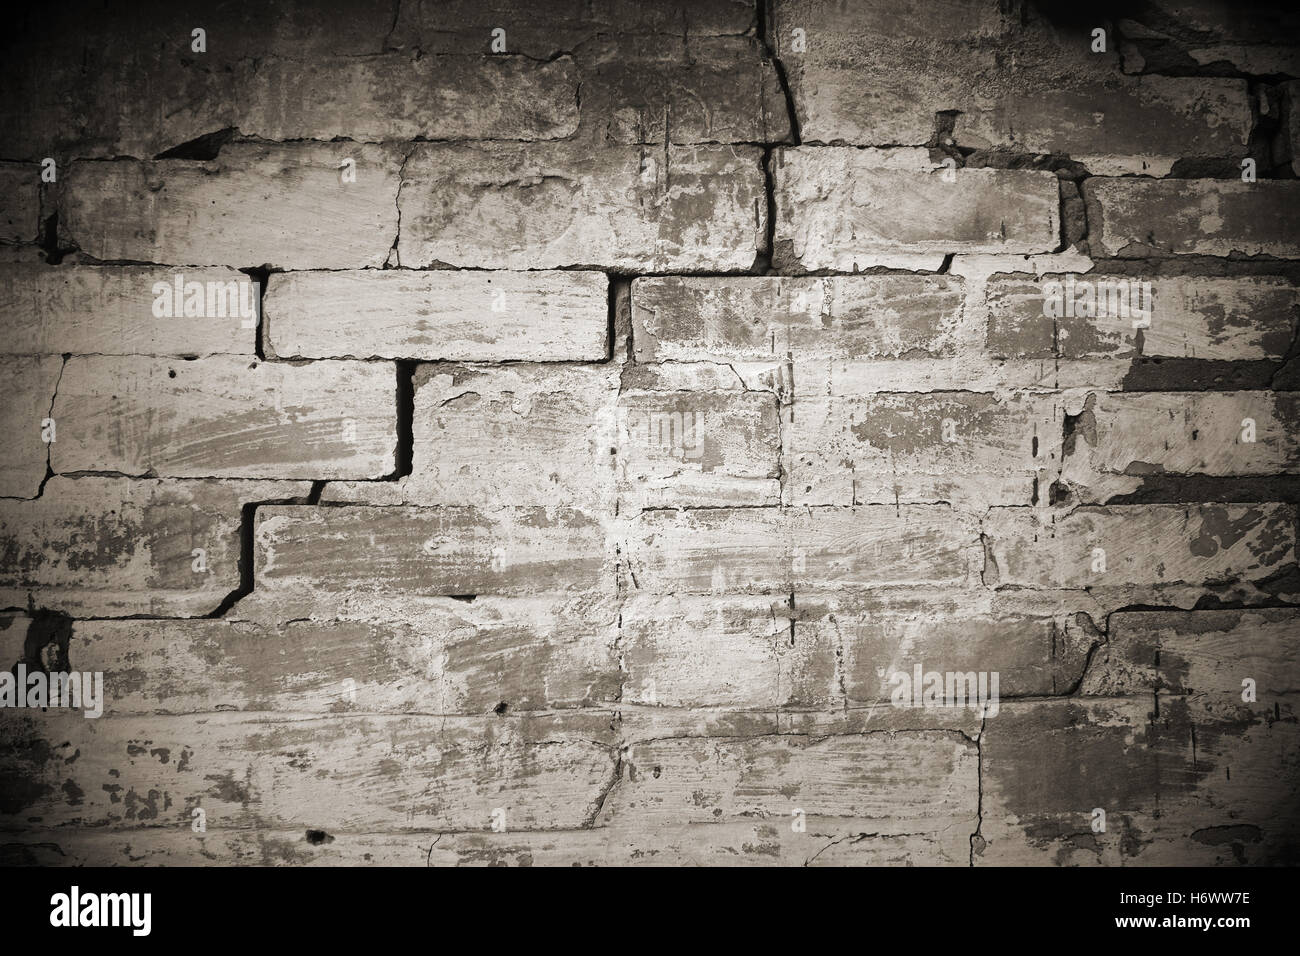 construction work stones old wall craftsman tradesman handicraftsman wall sandstone crannies masonry destruction - Stock Image